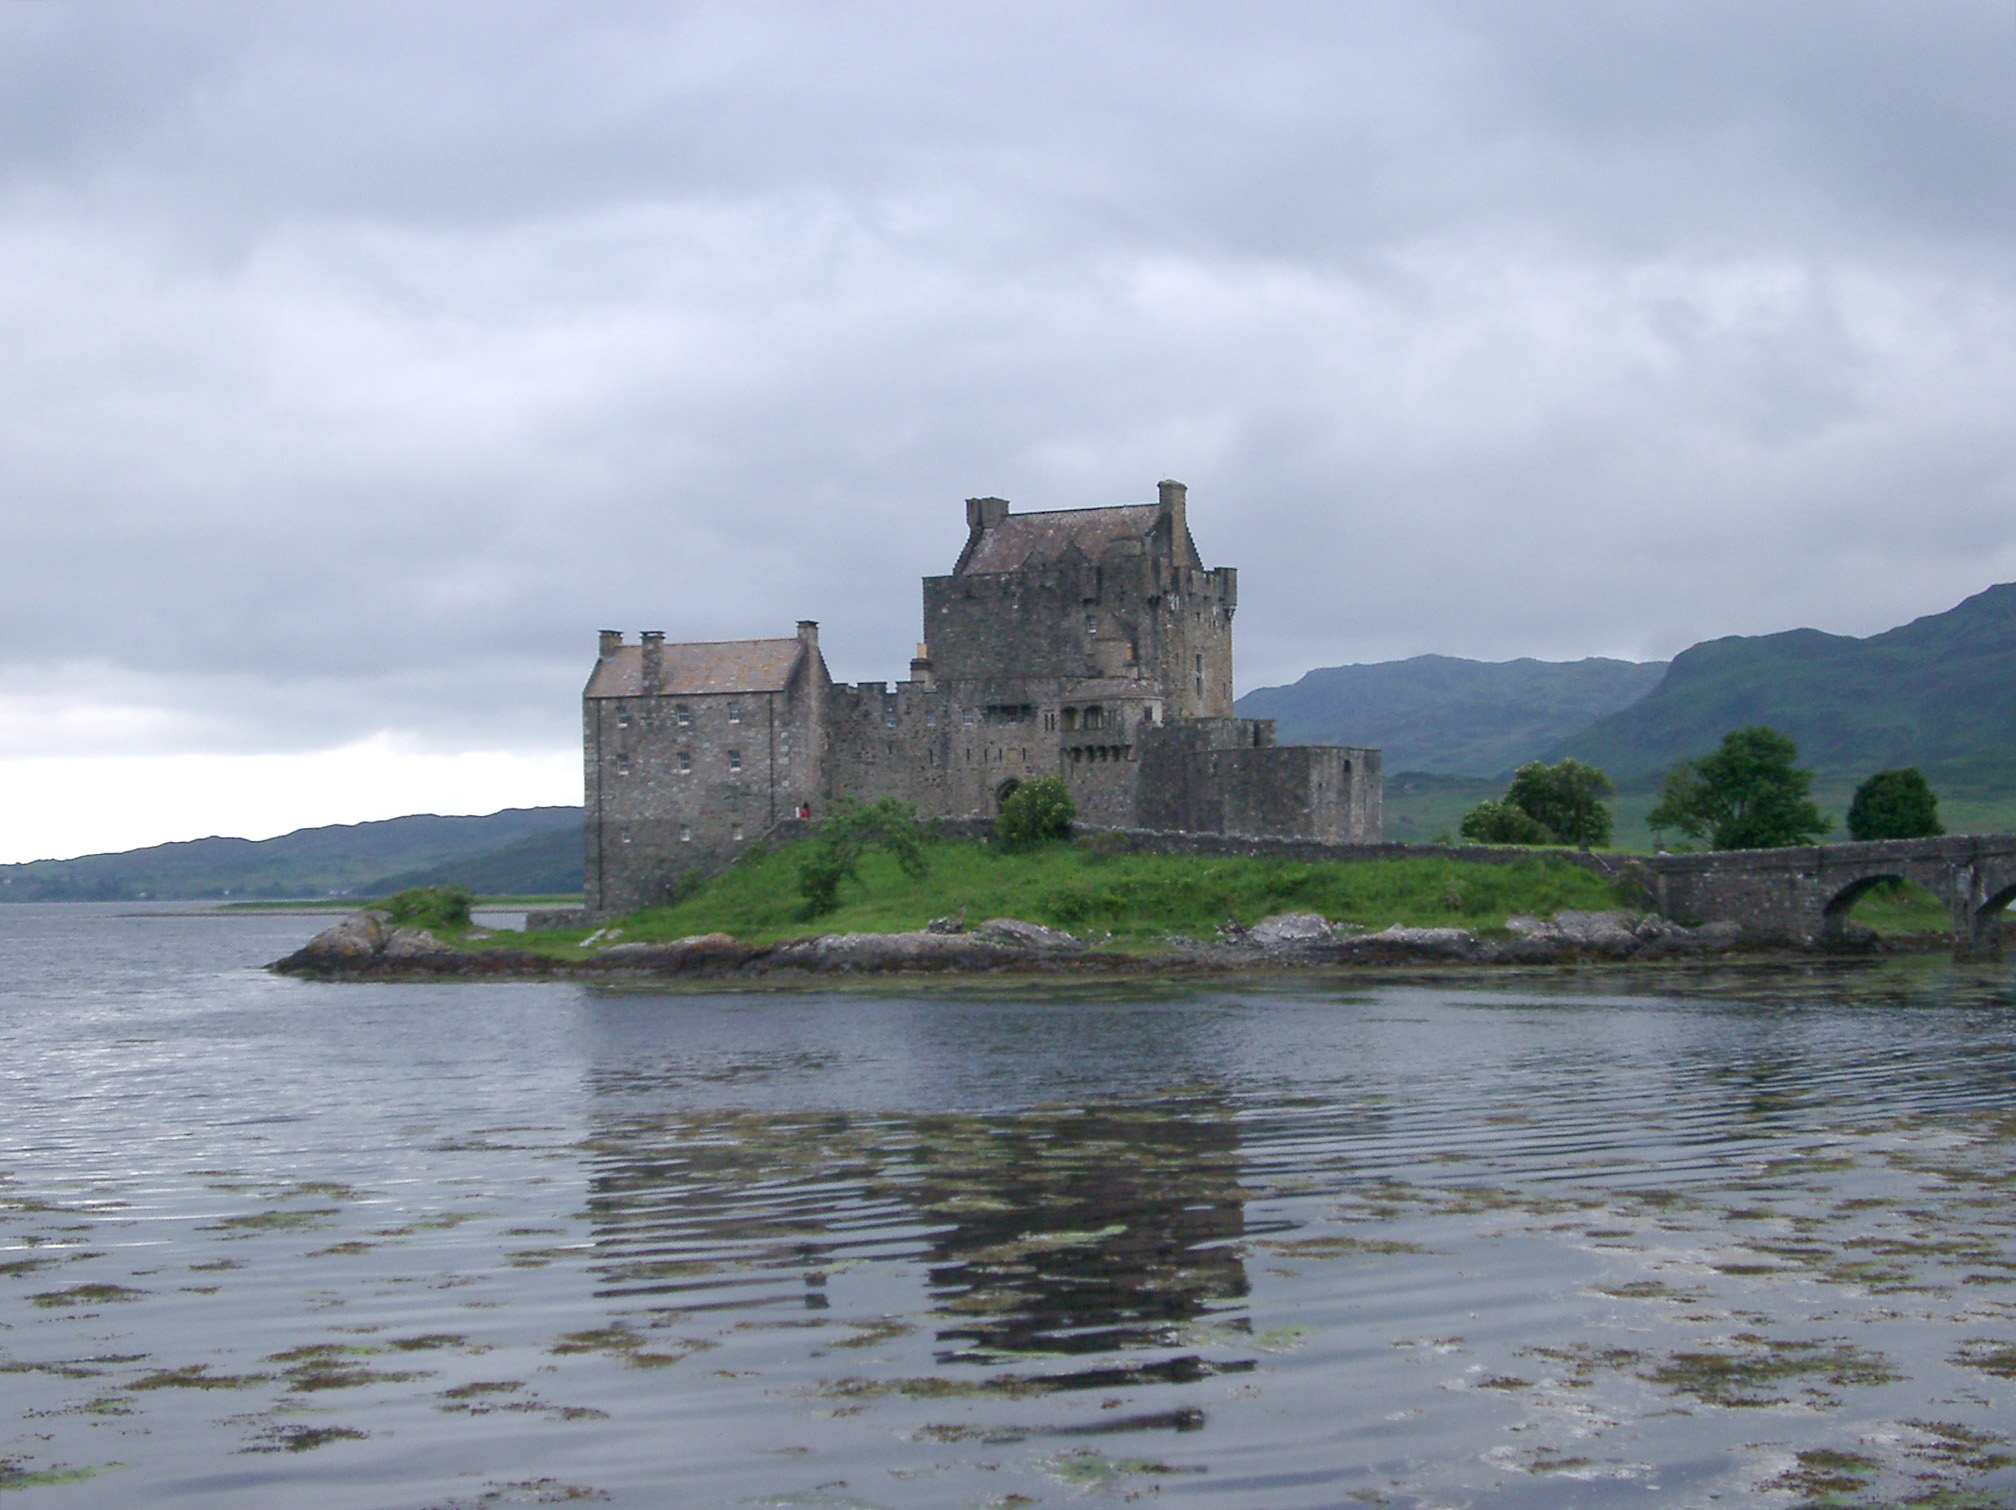 Eilean Donan Castle, Located in the Western Highlands of Scotland. Captured on the Afternoon with Gray Sky Background.